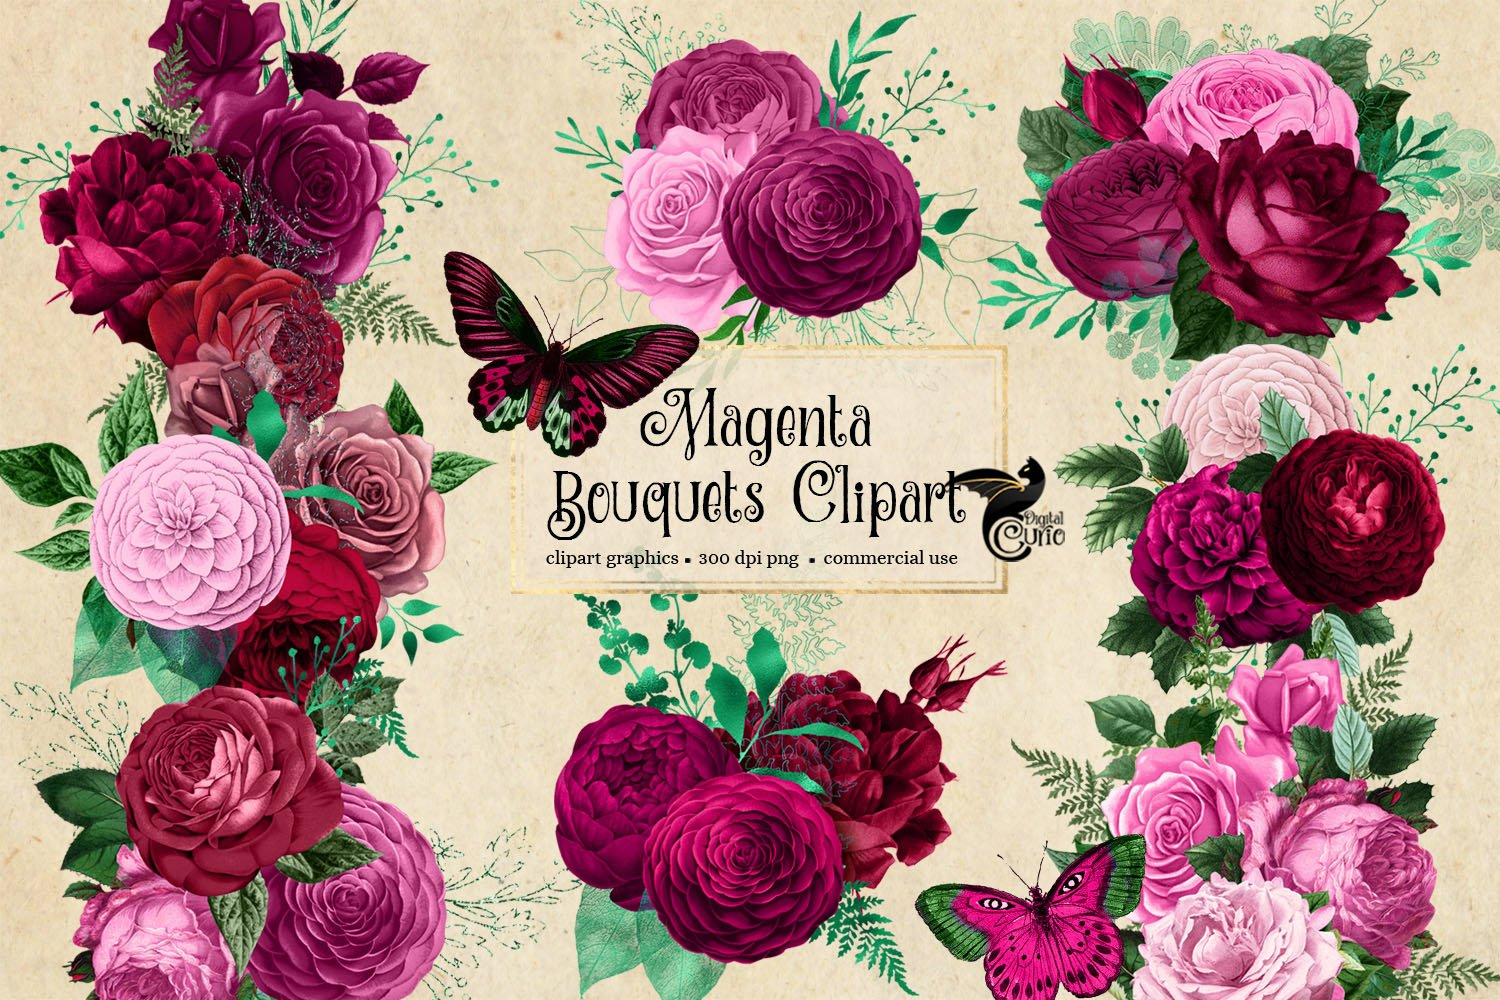 Magenta Bouquets Clipart example image 4